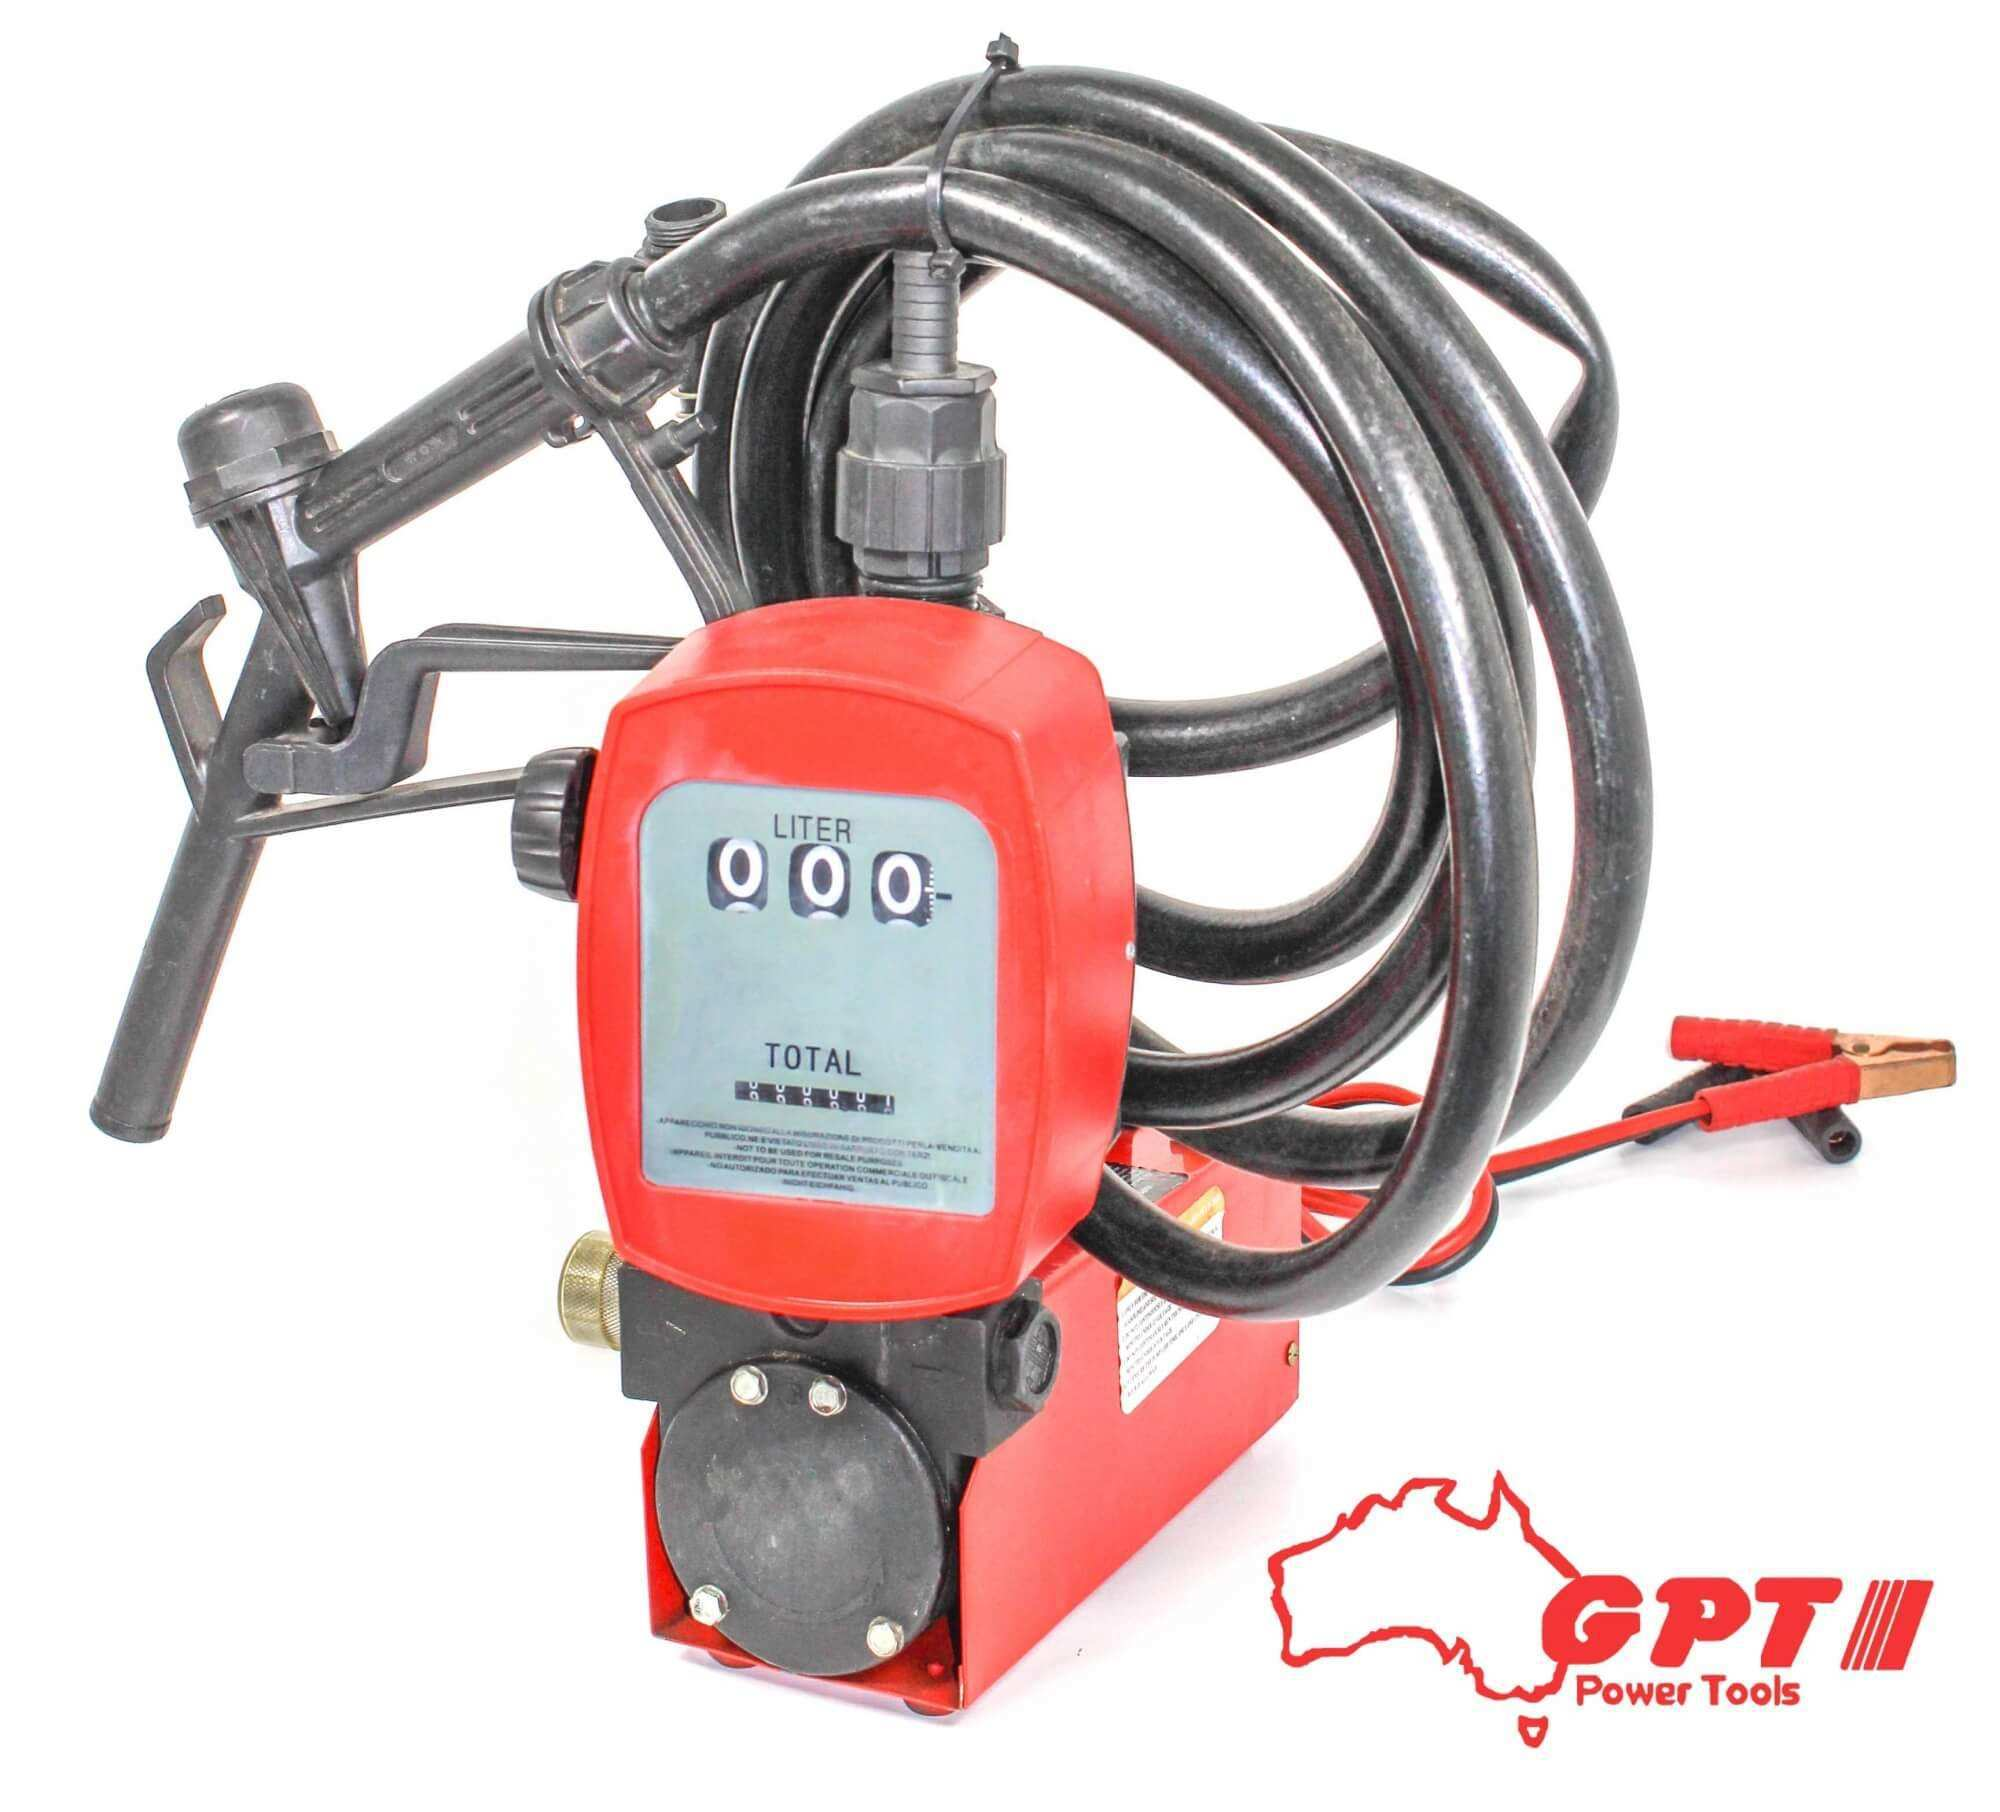 GPT 180W OIL / DIESEL PUMP WITH GAUGE - YB1224